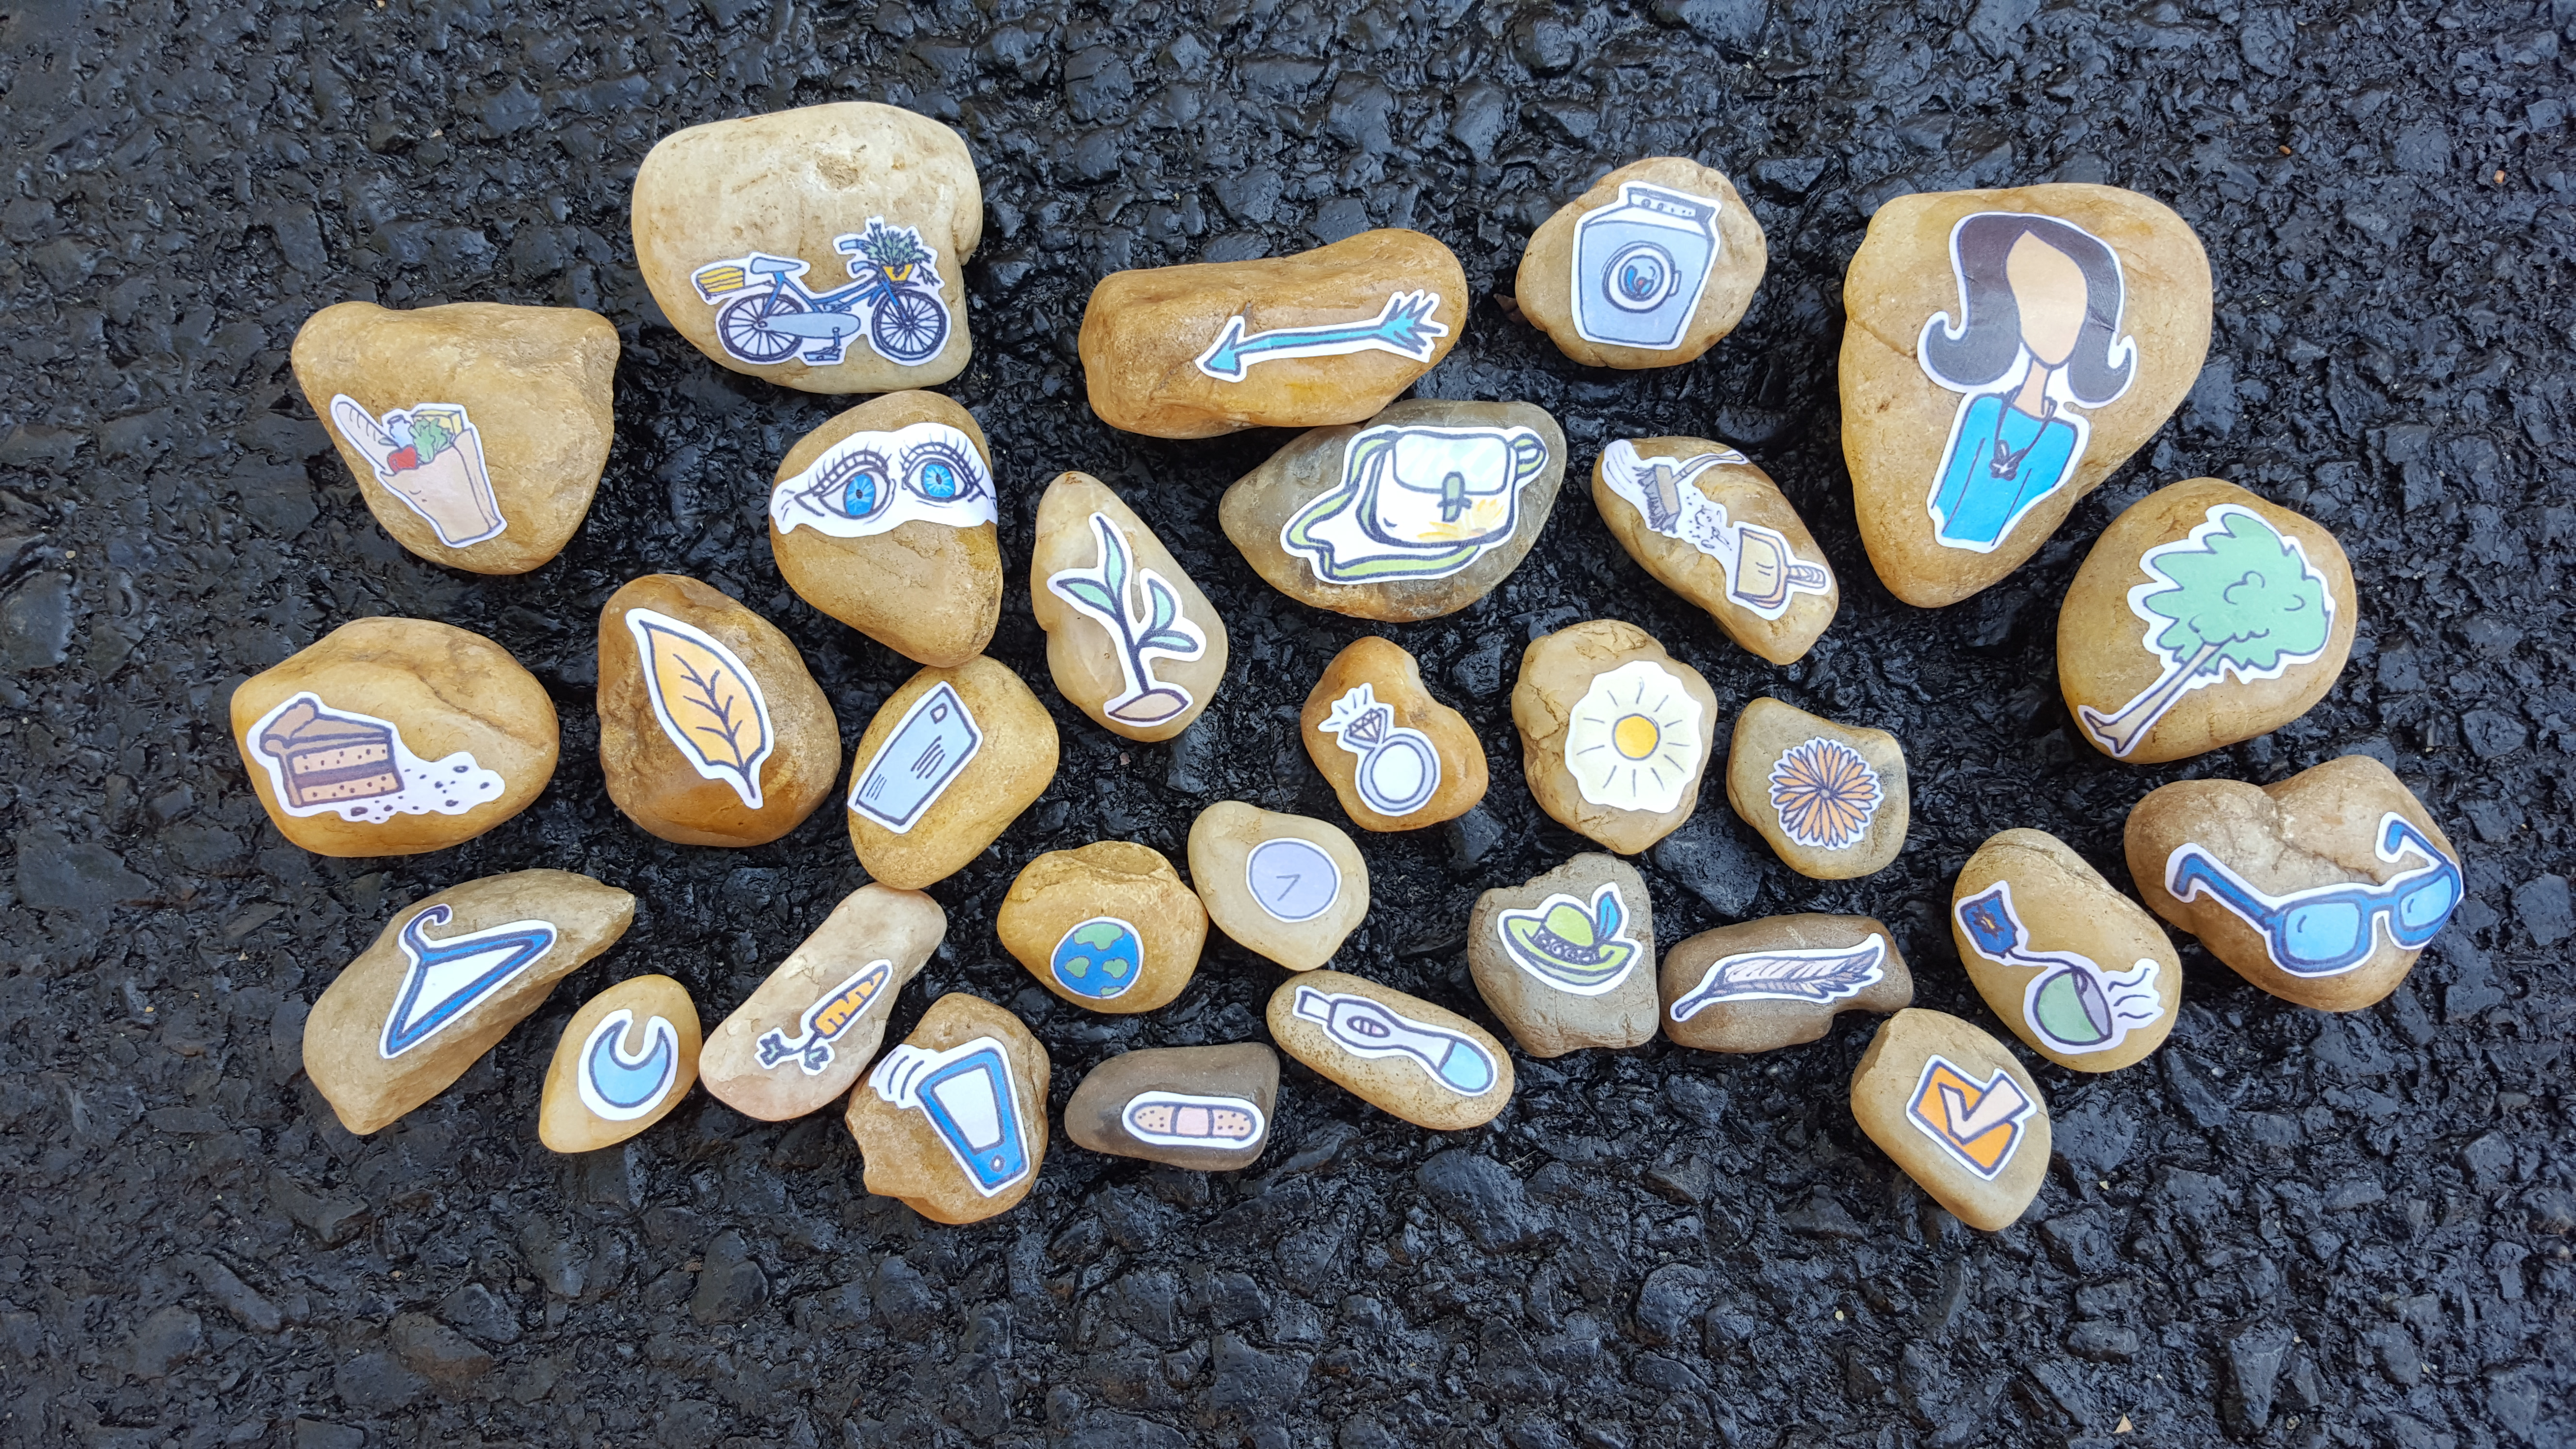 WOMENS ROCK collection 2 story stone